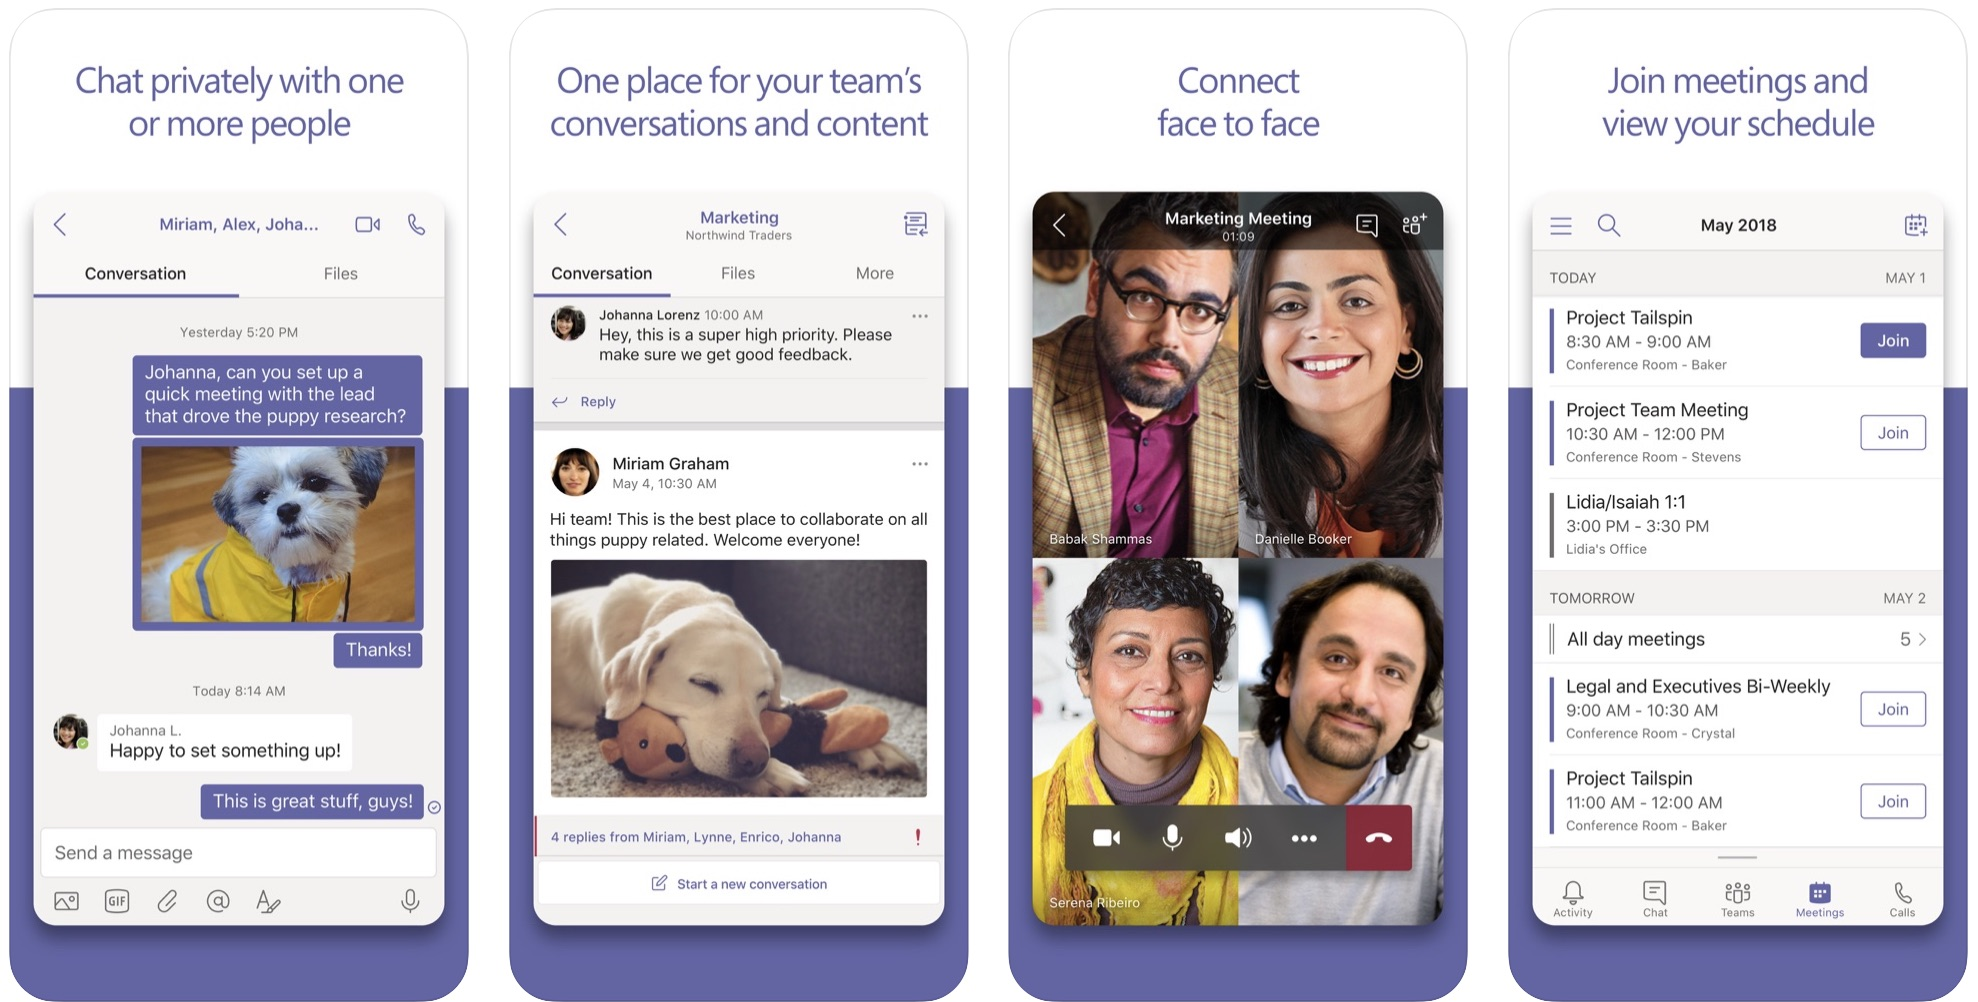 Zoom alternatives video call apps Skype and Microsoft Teams